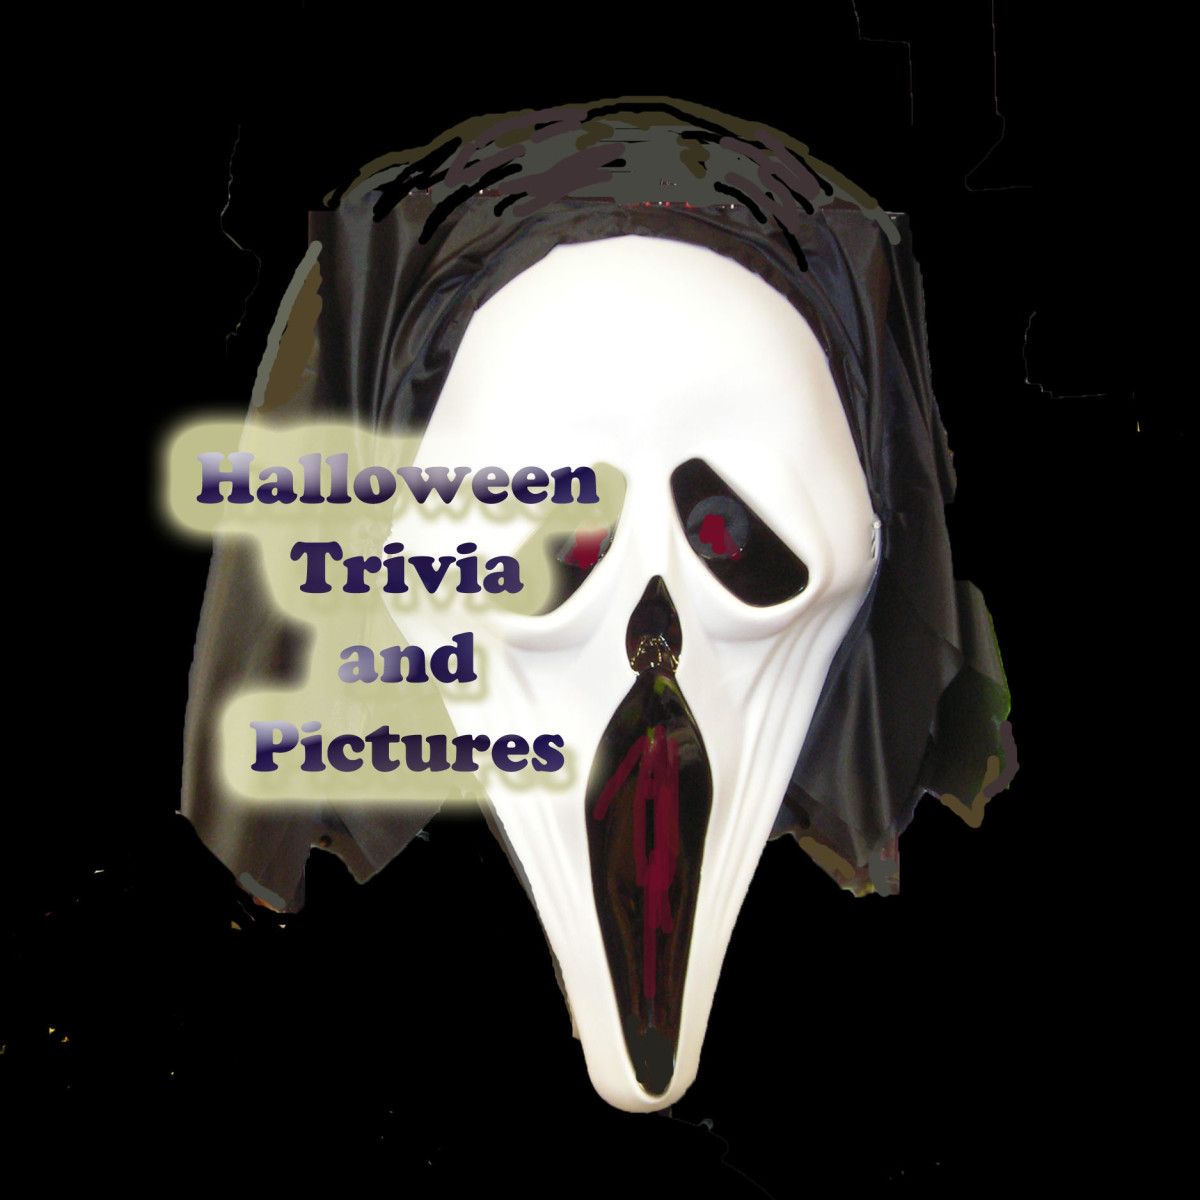 Halloween Trivia and Pictures